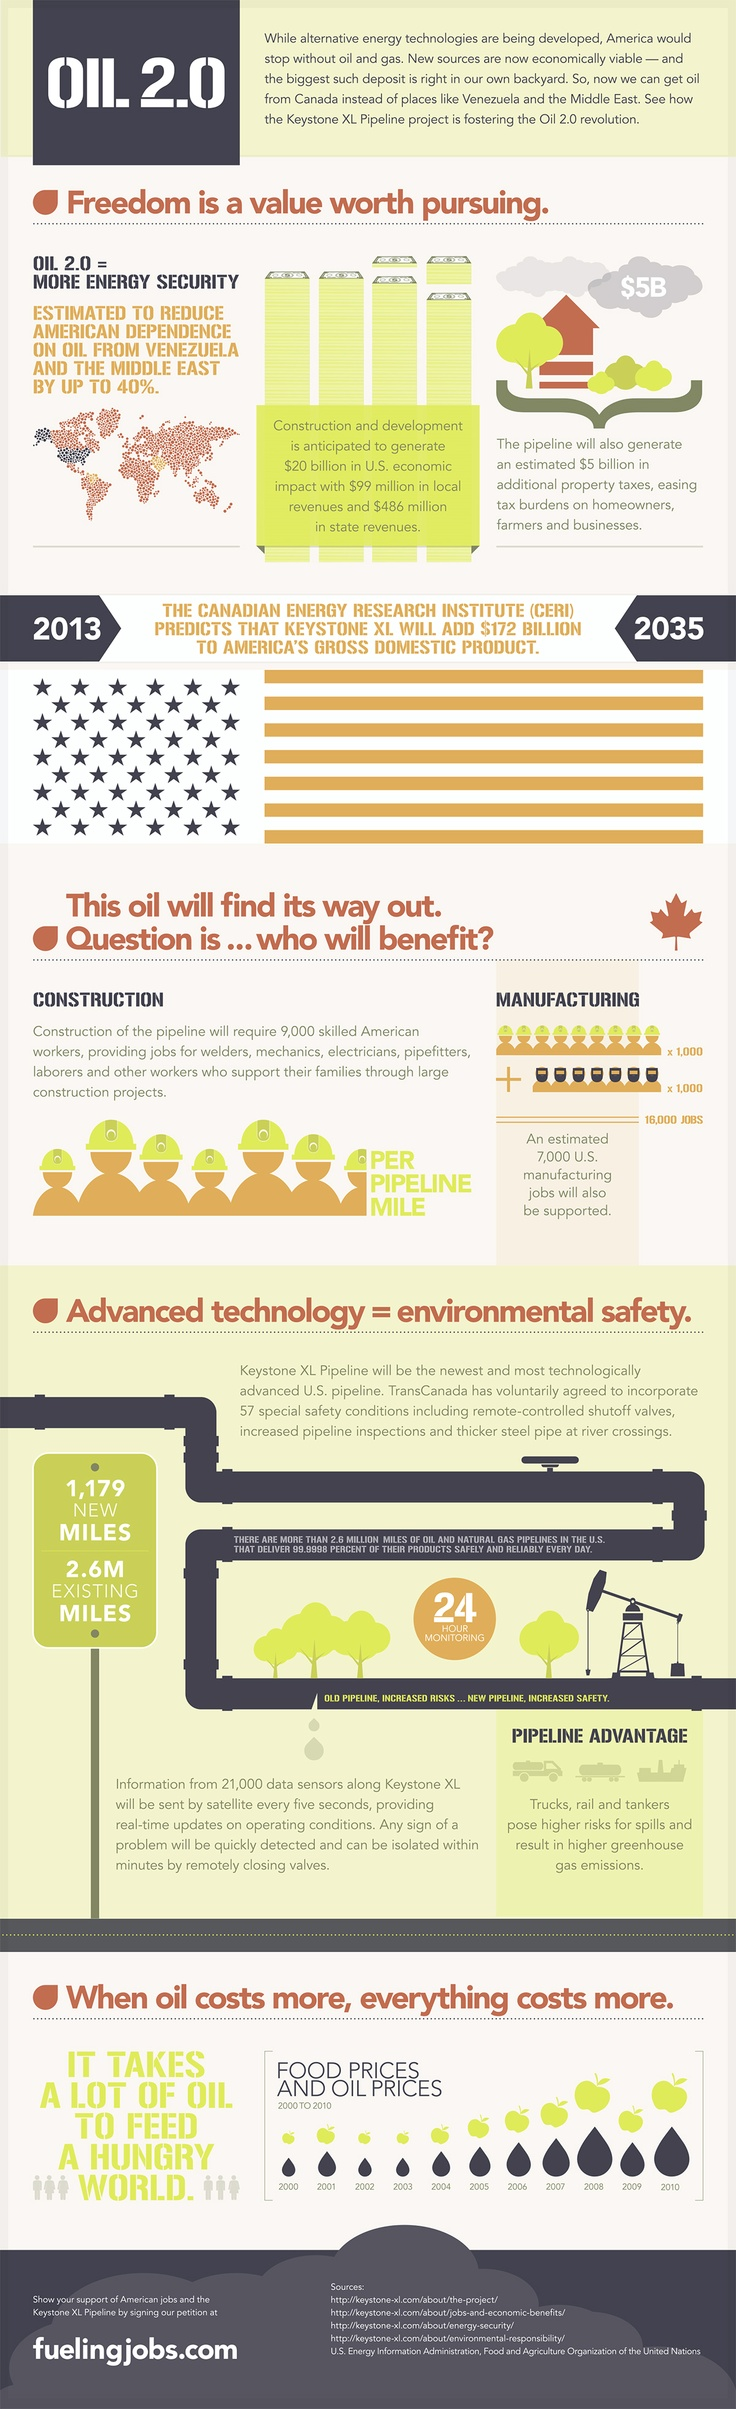 Rip Keystone Xl >> 113 best Oil & Gas images on Pinterest   Oil field, Oil and gas and Oil industry